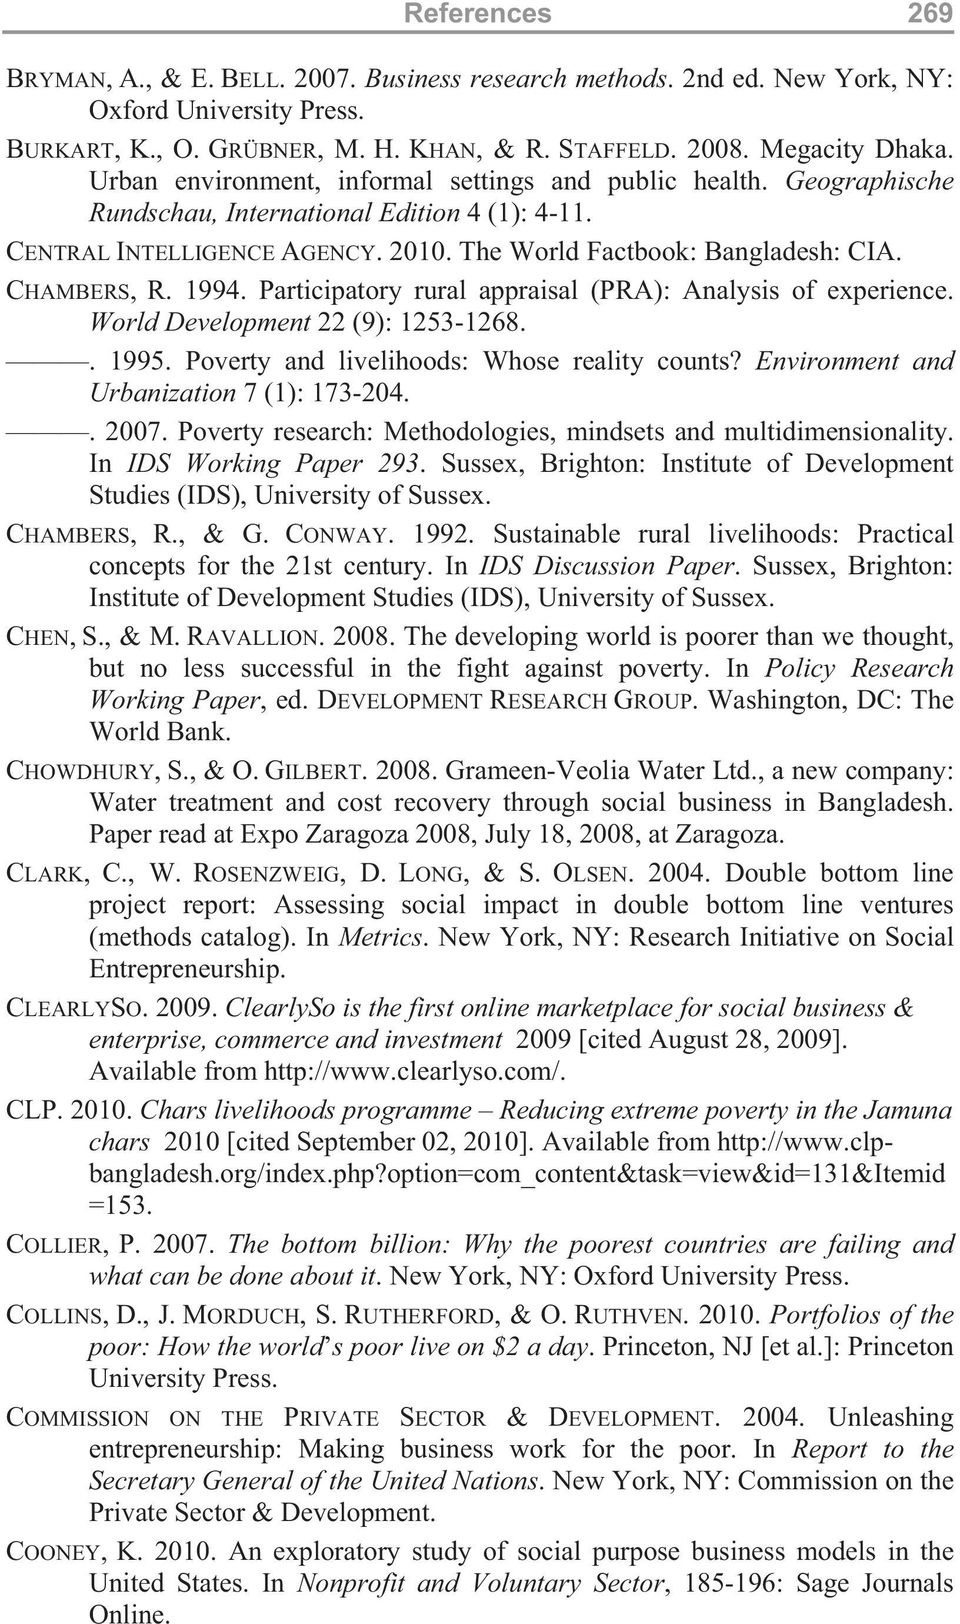 1994. Participatory rural appraisal (PRA): Analysis of experience. World Development 22 (9): 1253-1268.. 1995. Poverty and livelihoods: Whose reality counts?